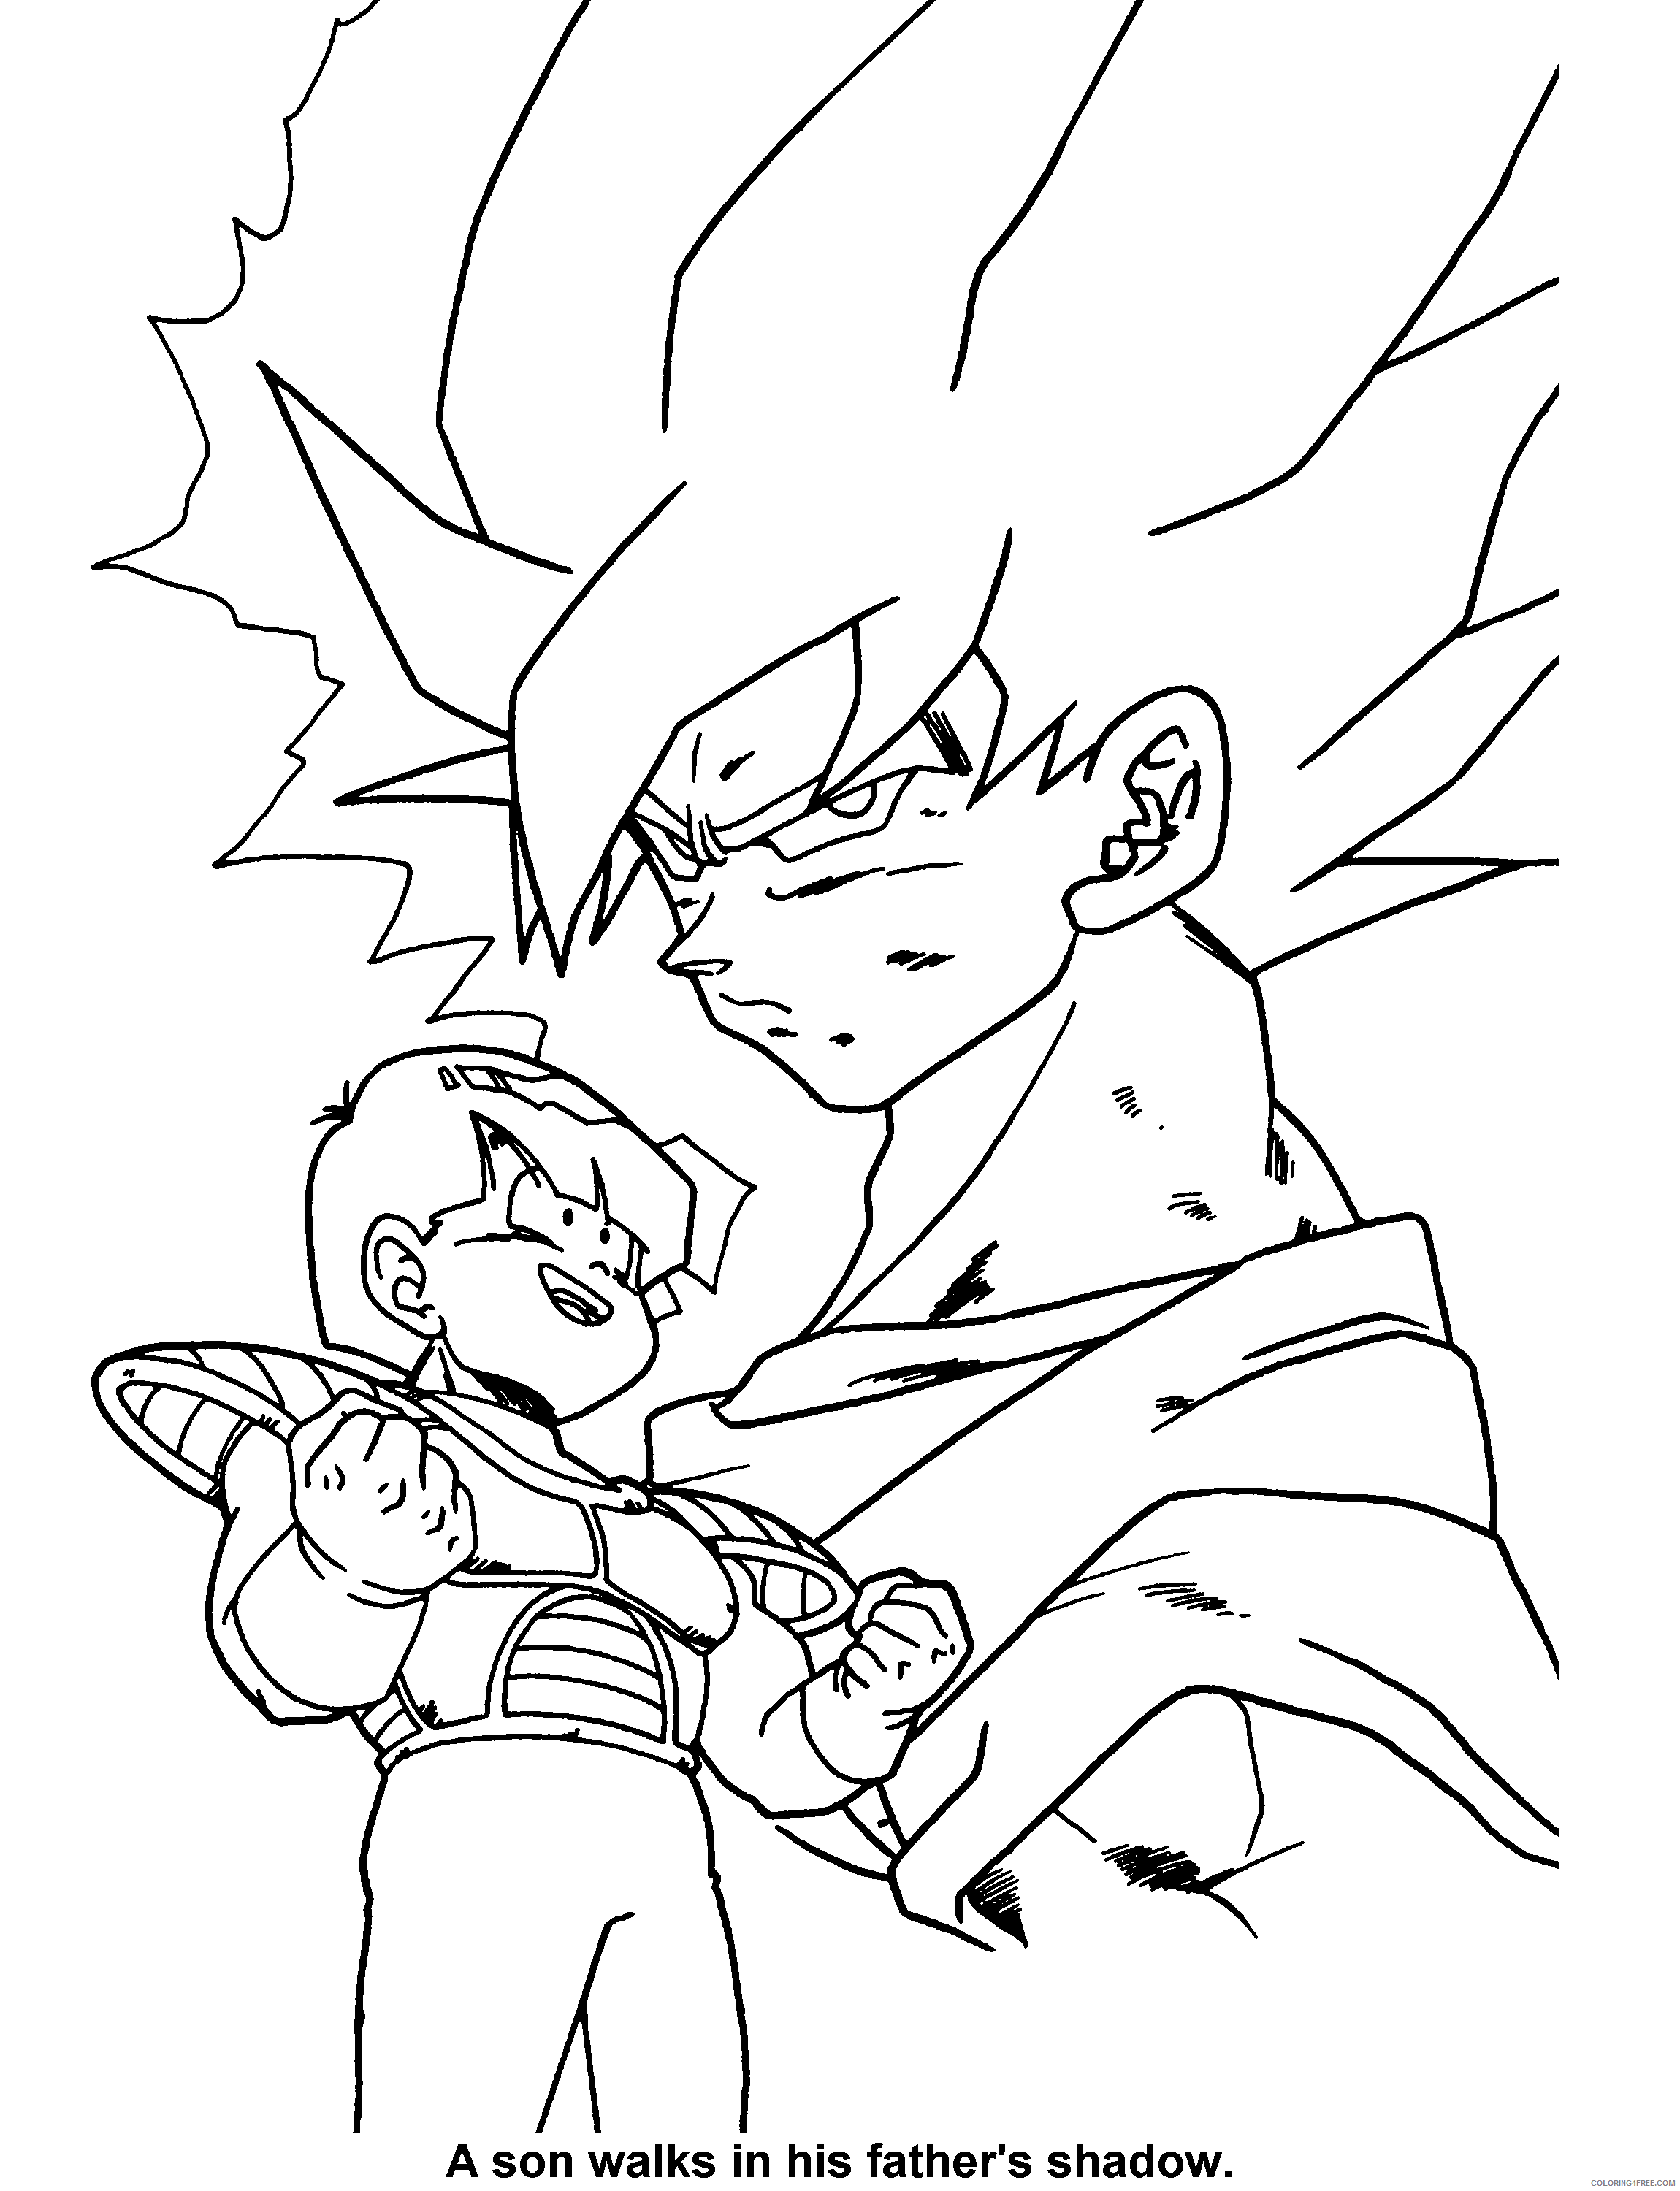 014 dragon ball z a son walks in his fathers shadow Printable Coloring4free